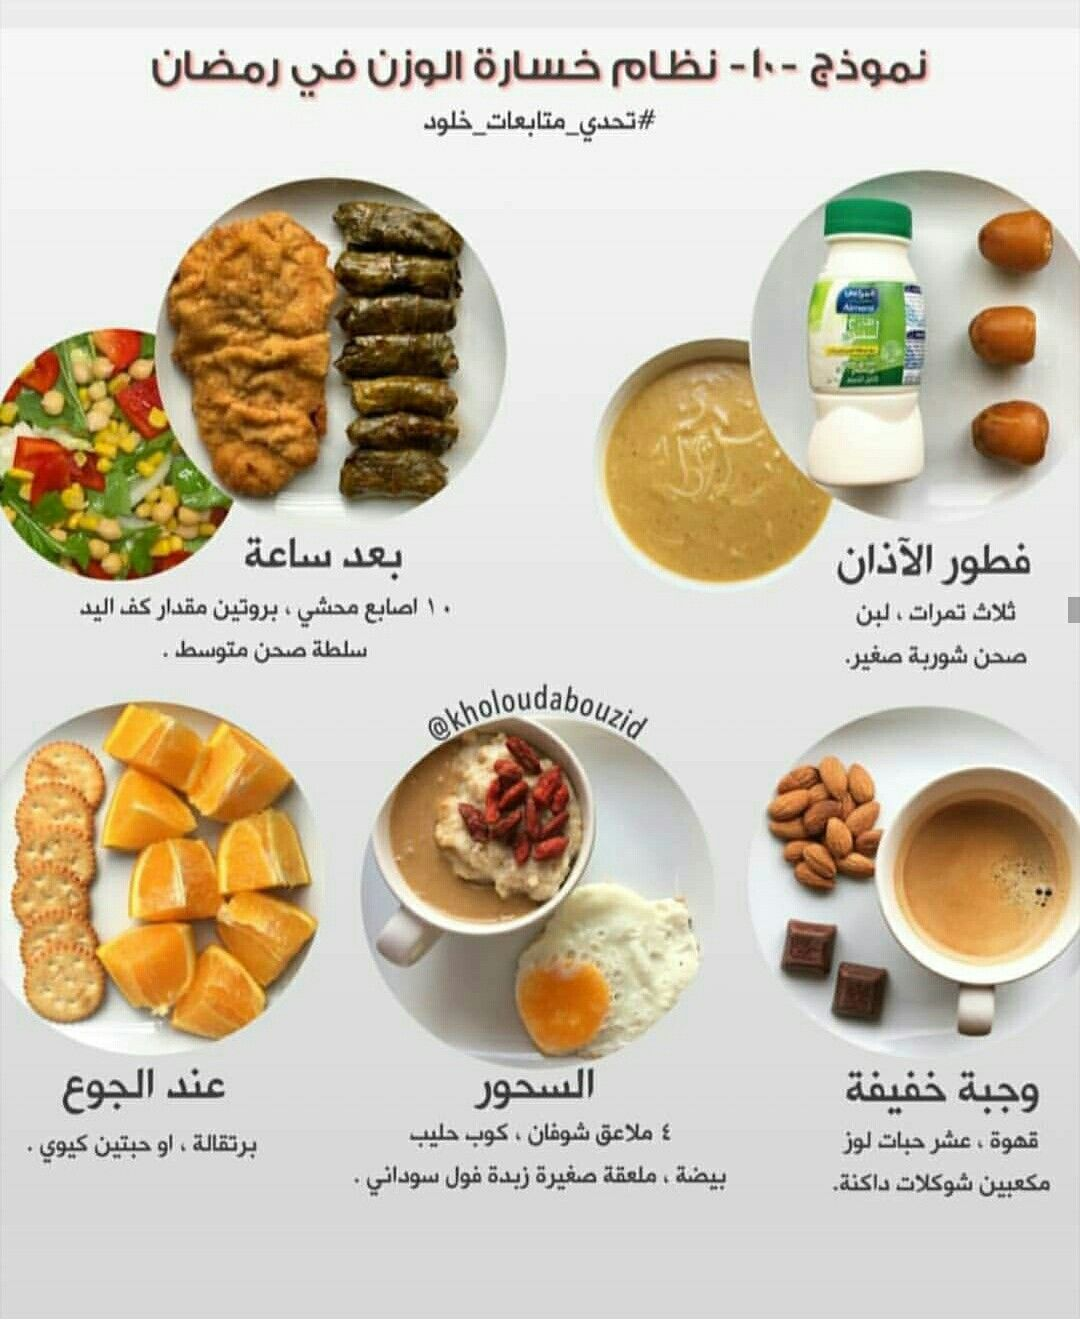 Pin By Lubna Adam On Diet Health Facts Food Health Food Health Fitness Nutrition